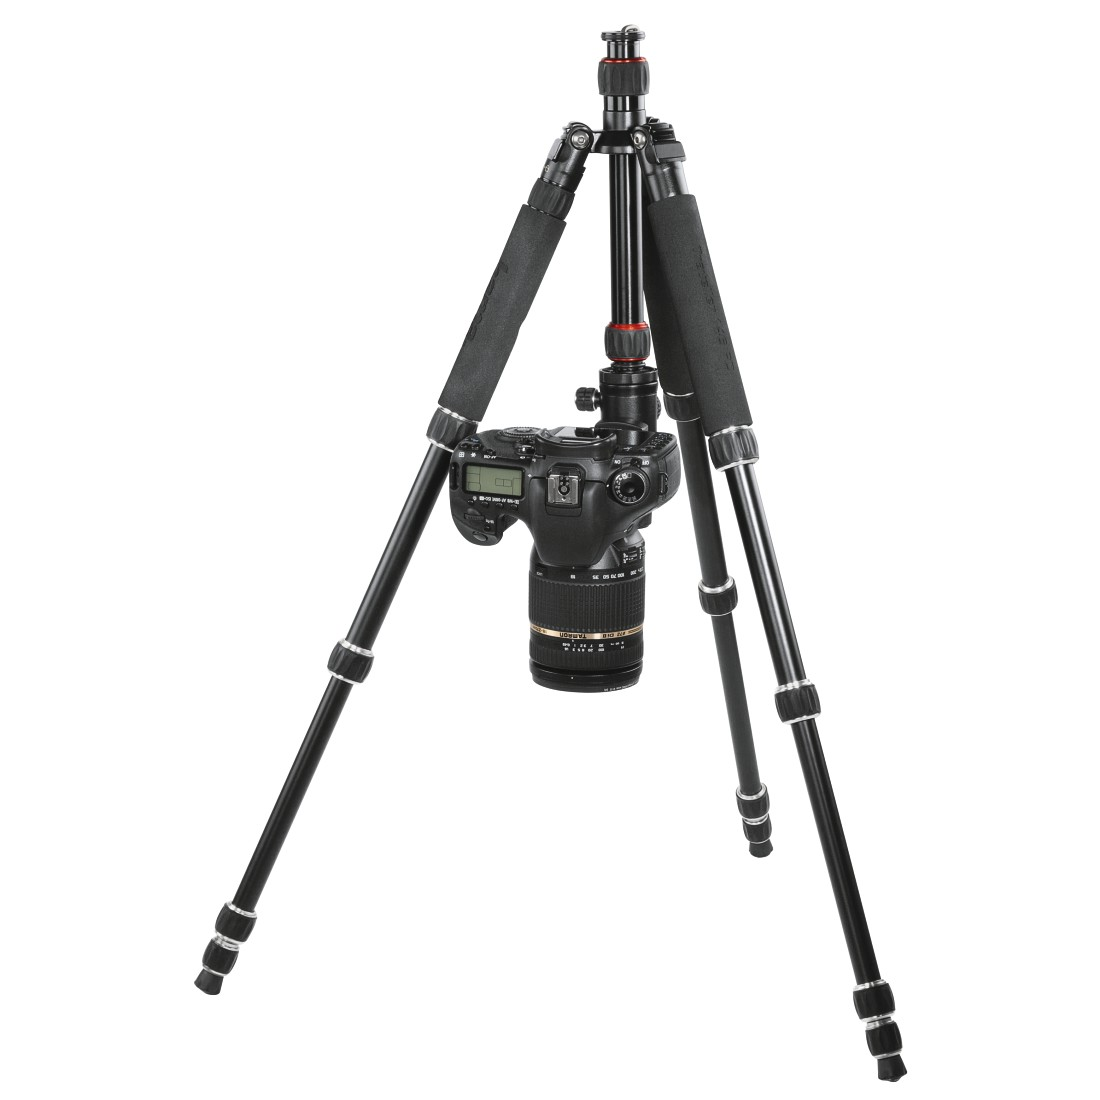 awx3 High-Res Appliance 3 - Hama, Traveller 146 Premium Duo Tripod